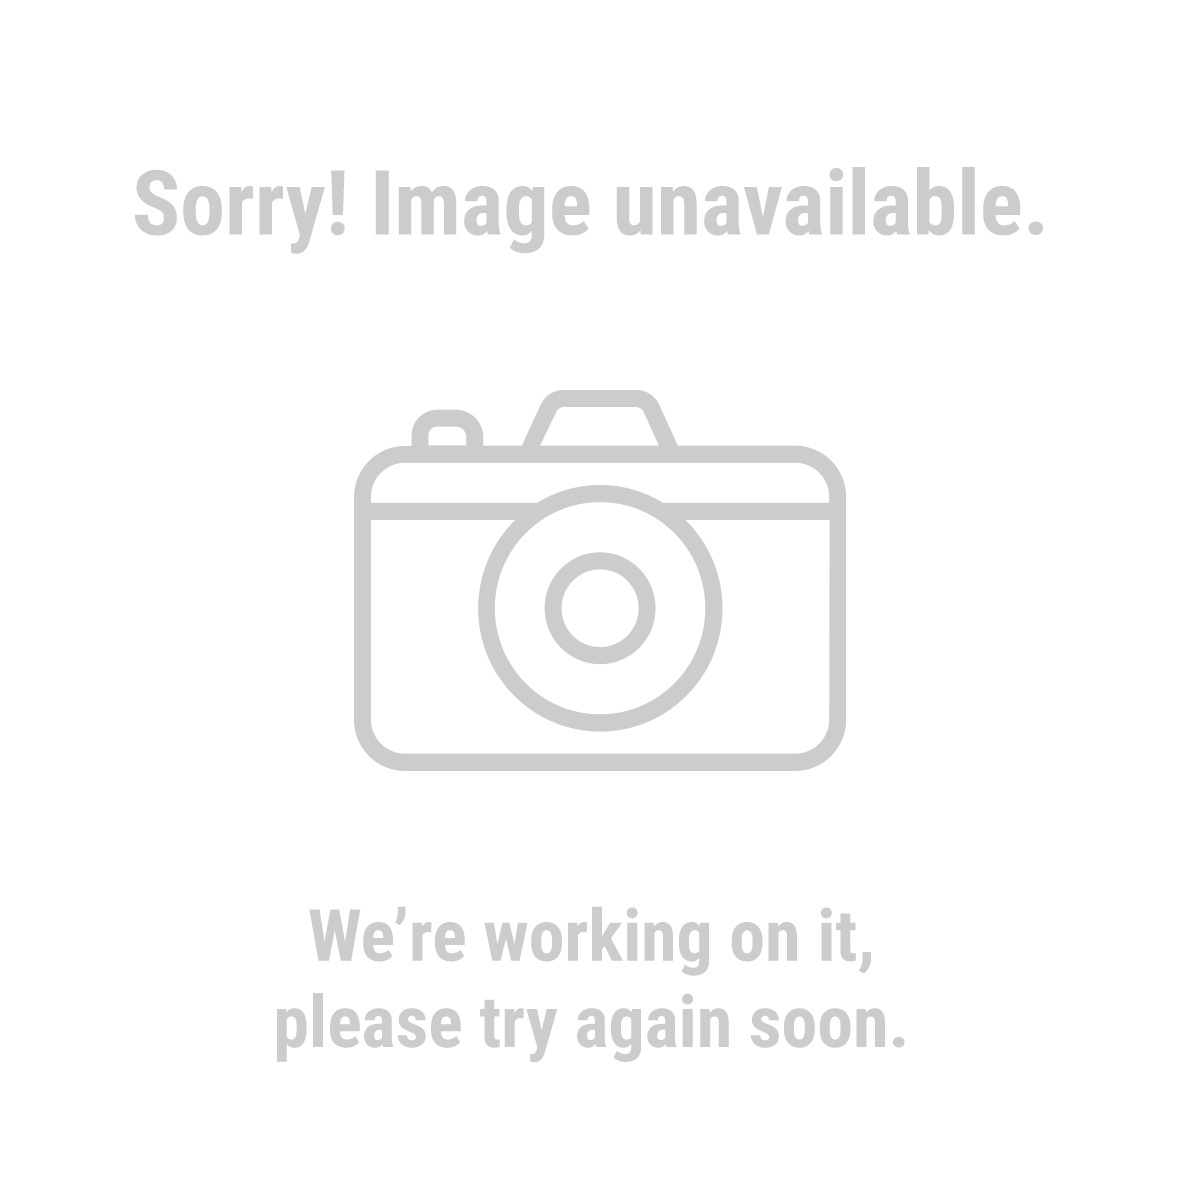 Diablo 63047 3/8 in. x 50 ft. Premium Rubber Air Hose